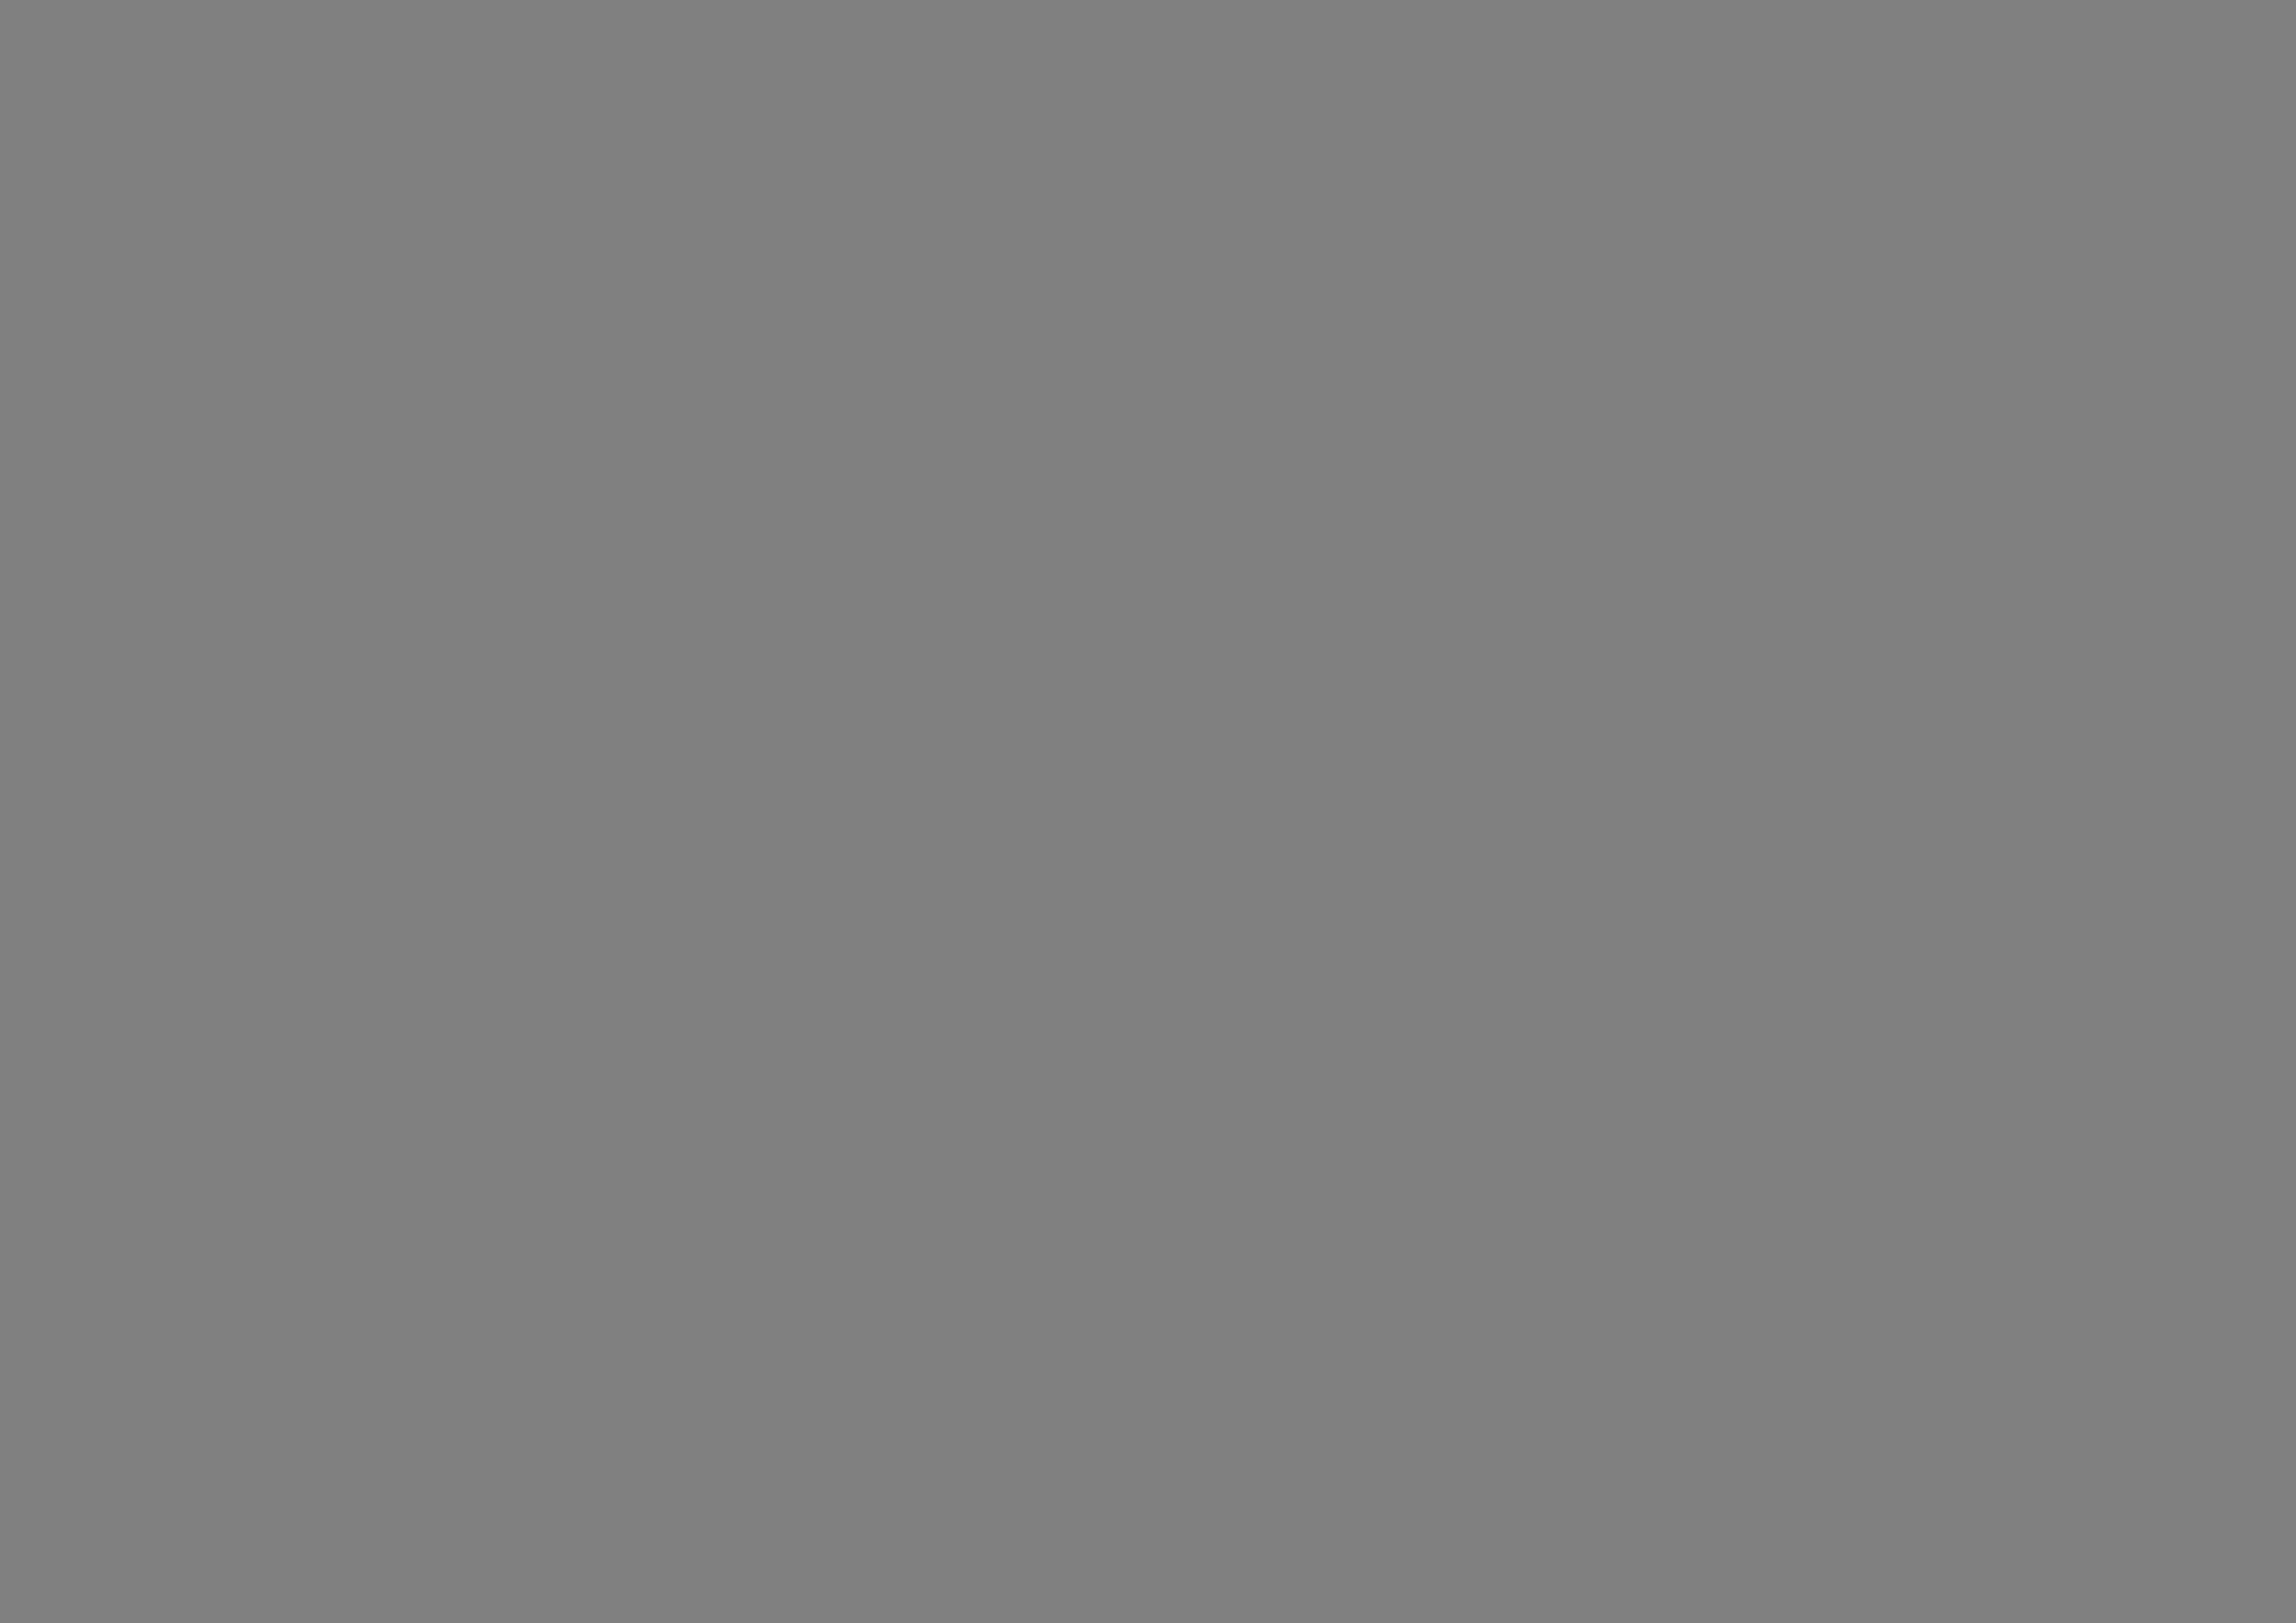 3508x2480 Gray Solid Color Background